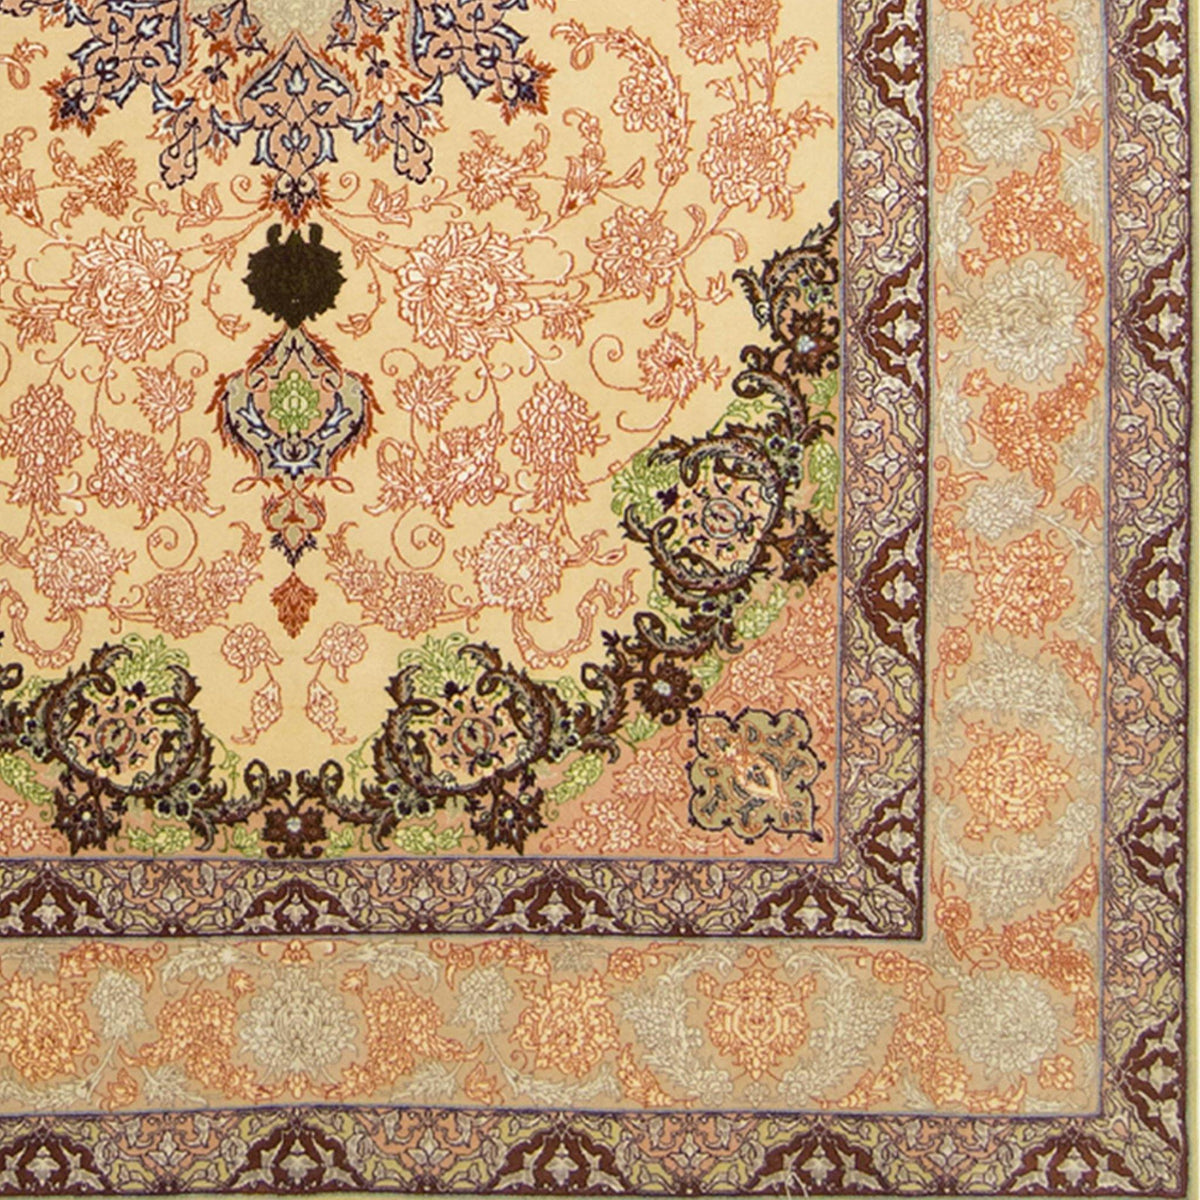 Super Fine Hand-knotted Genuine Persian Wool & Silk Isfahan Rug 156cm x 230cm Persian-Rug | House-of-Haghi | NewMarket | Auckland | NZ | Handmade Persian Rugs | Hand Knotted Persian Rugs